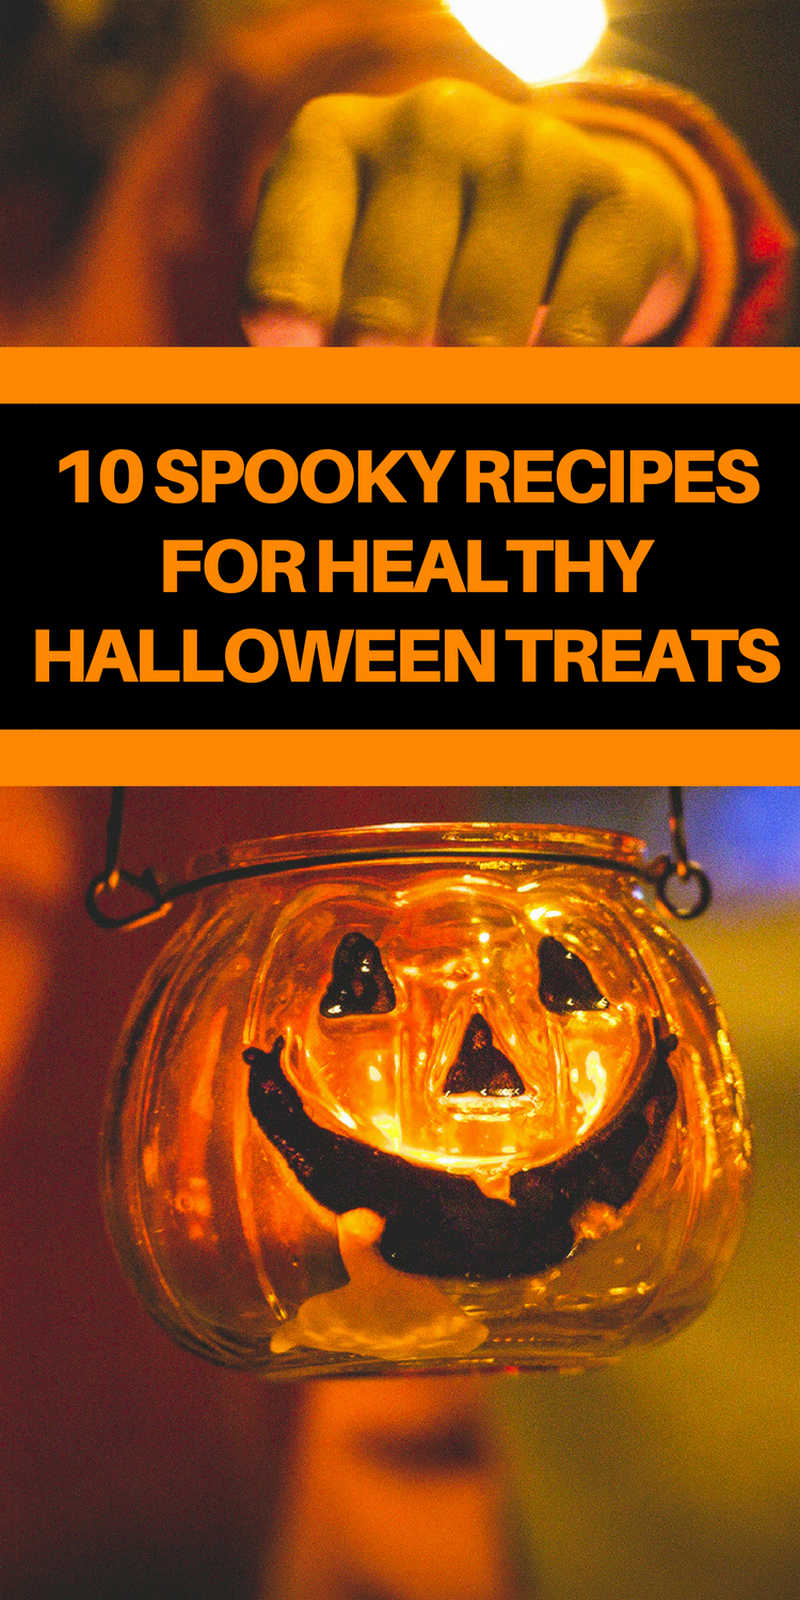 10 Spooky Recipes For Healthy Halloween Treats | Have A Deliciously Healthy, Safe and Happy Halloween | Recipes | Weight Loss Food | Weight Loss Recipes | Healthy Meals | Weight Loss Snack Recipes | Weight Loss Dinner Recipes | Weight Loss Dessert Recipes | Weight Loss Low Carb Recipes | Weight Loss Lunch Recipes | Weight Loss Breakfast Recipes | ARoadtoTravel.com